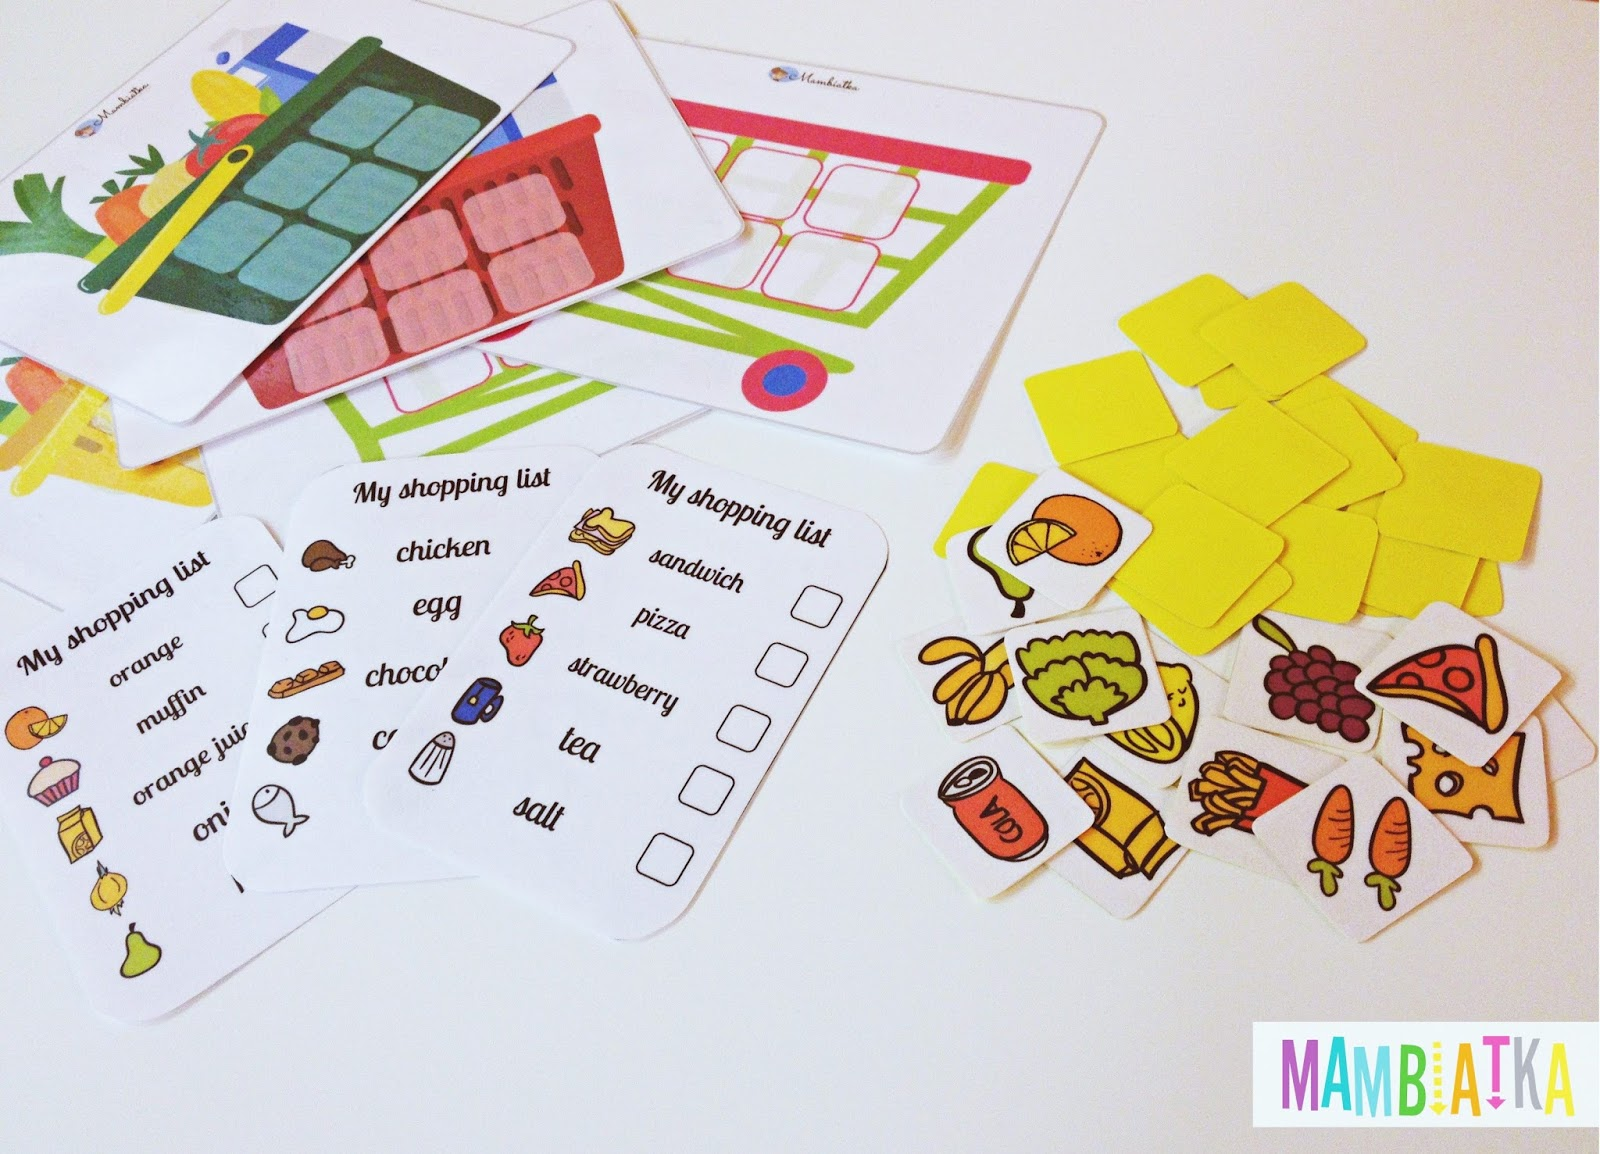 mambiatka | english for kids | resources for teachers and parents